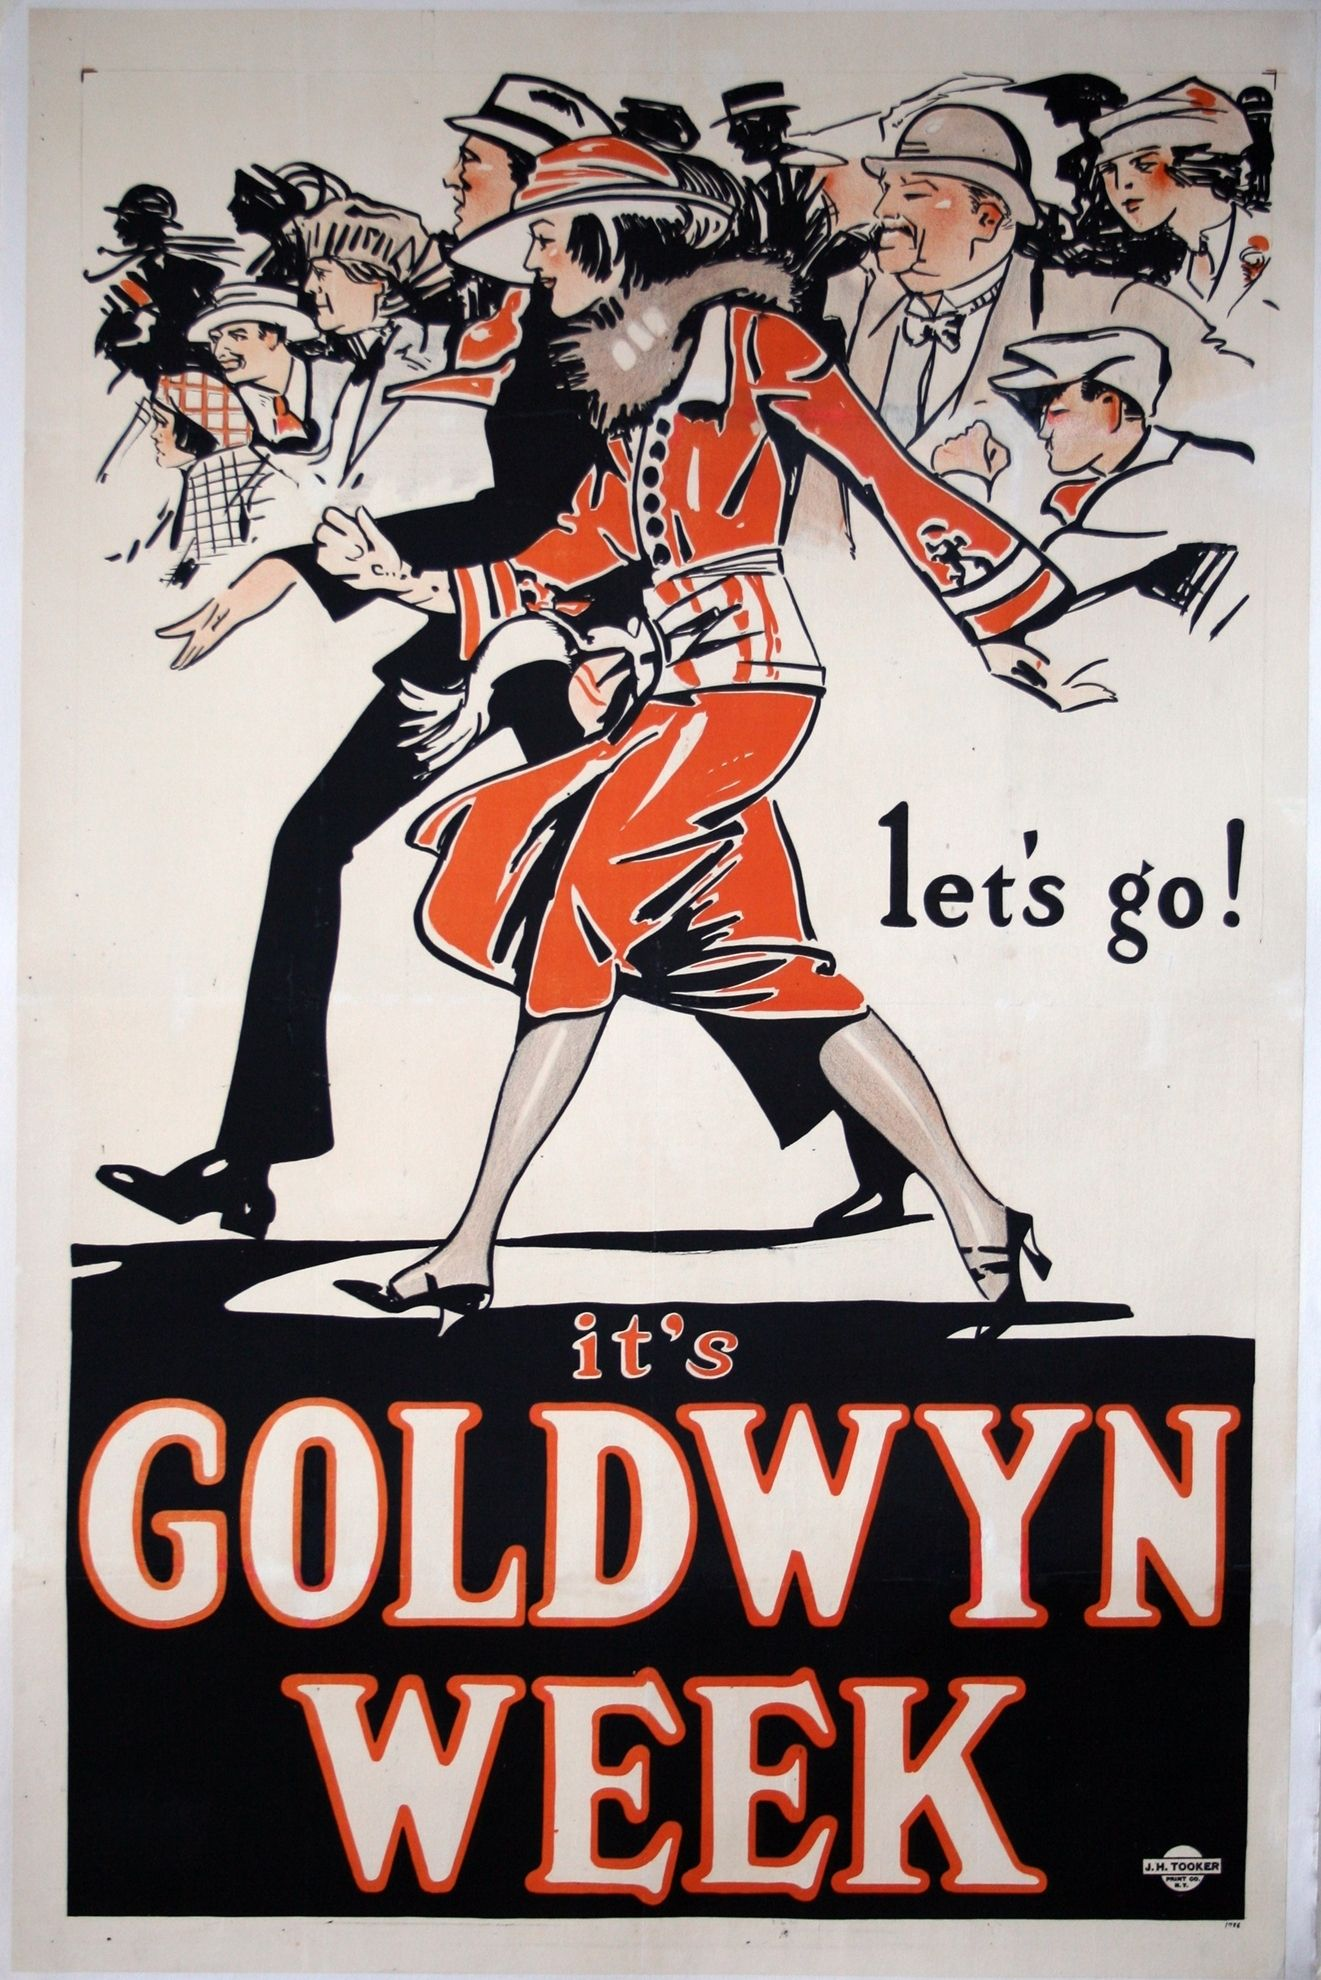 early-hollywood-cinema-a-rare-1920s-american-cinema-advertising-poster-its-goldwyn-week-lets-go